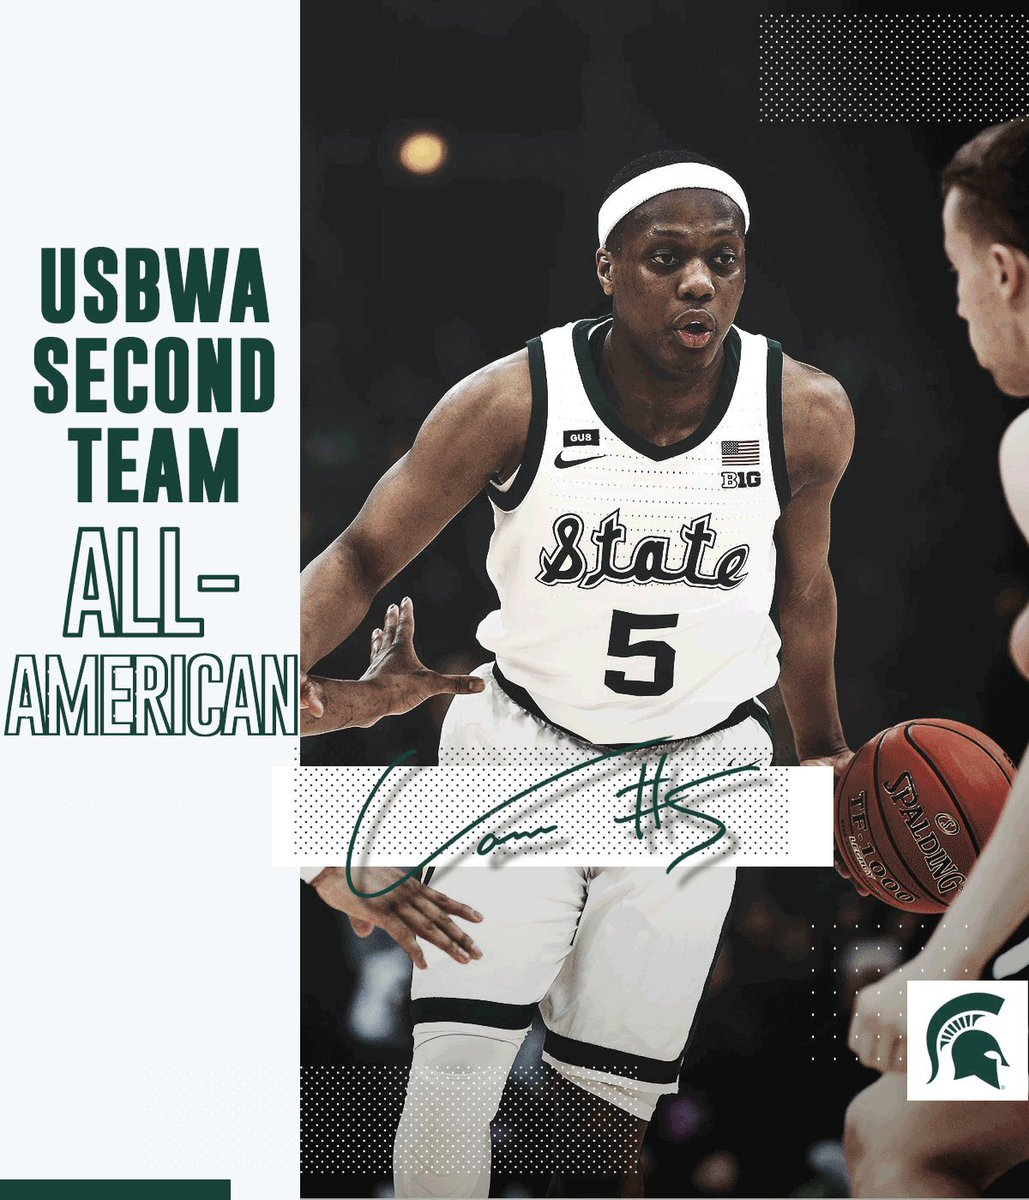 Another All-American honor for @cassiuswinston from @USBWA 🏅 #SpartanDawg